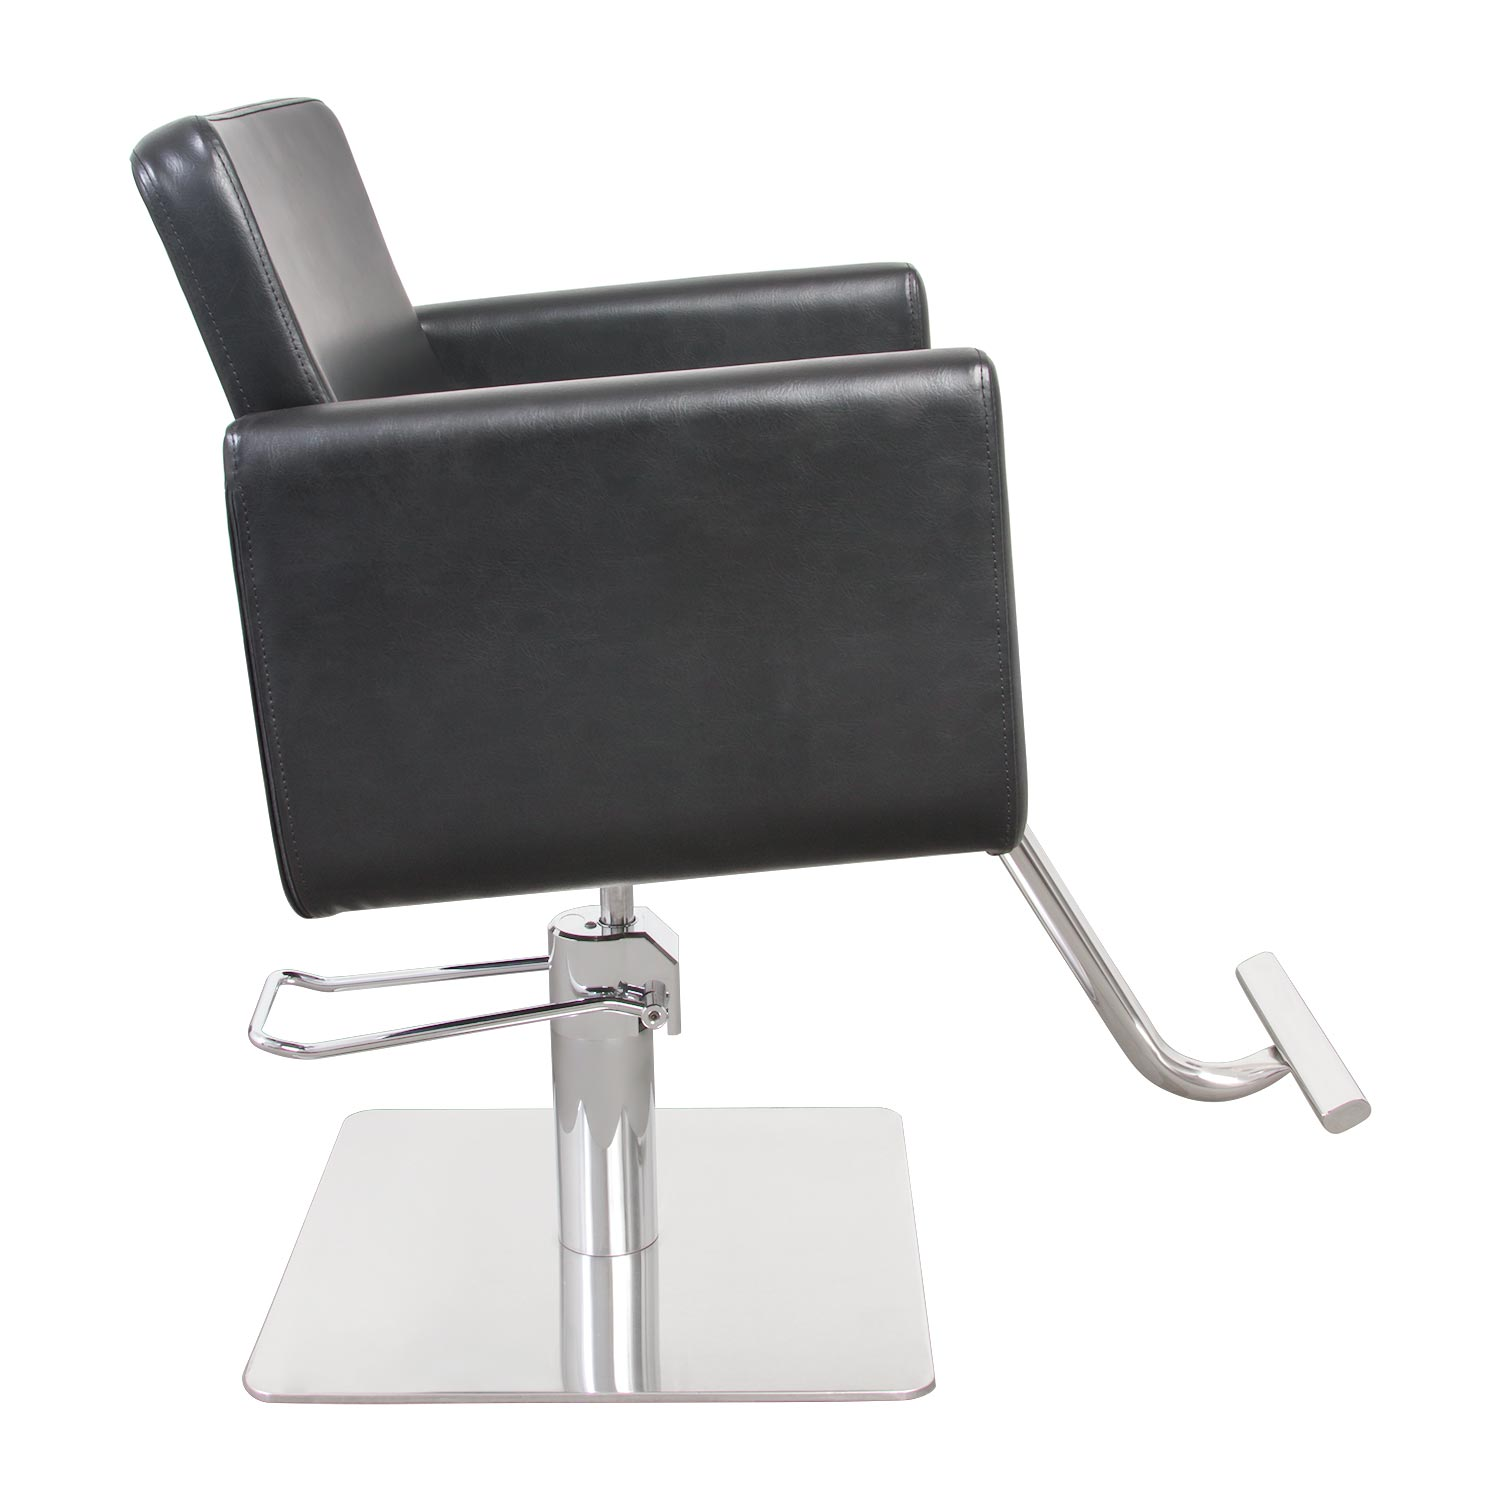 Maxton Square Stylist Chair alternative product image 3